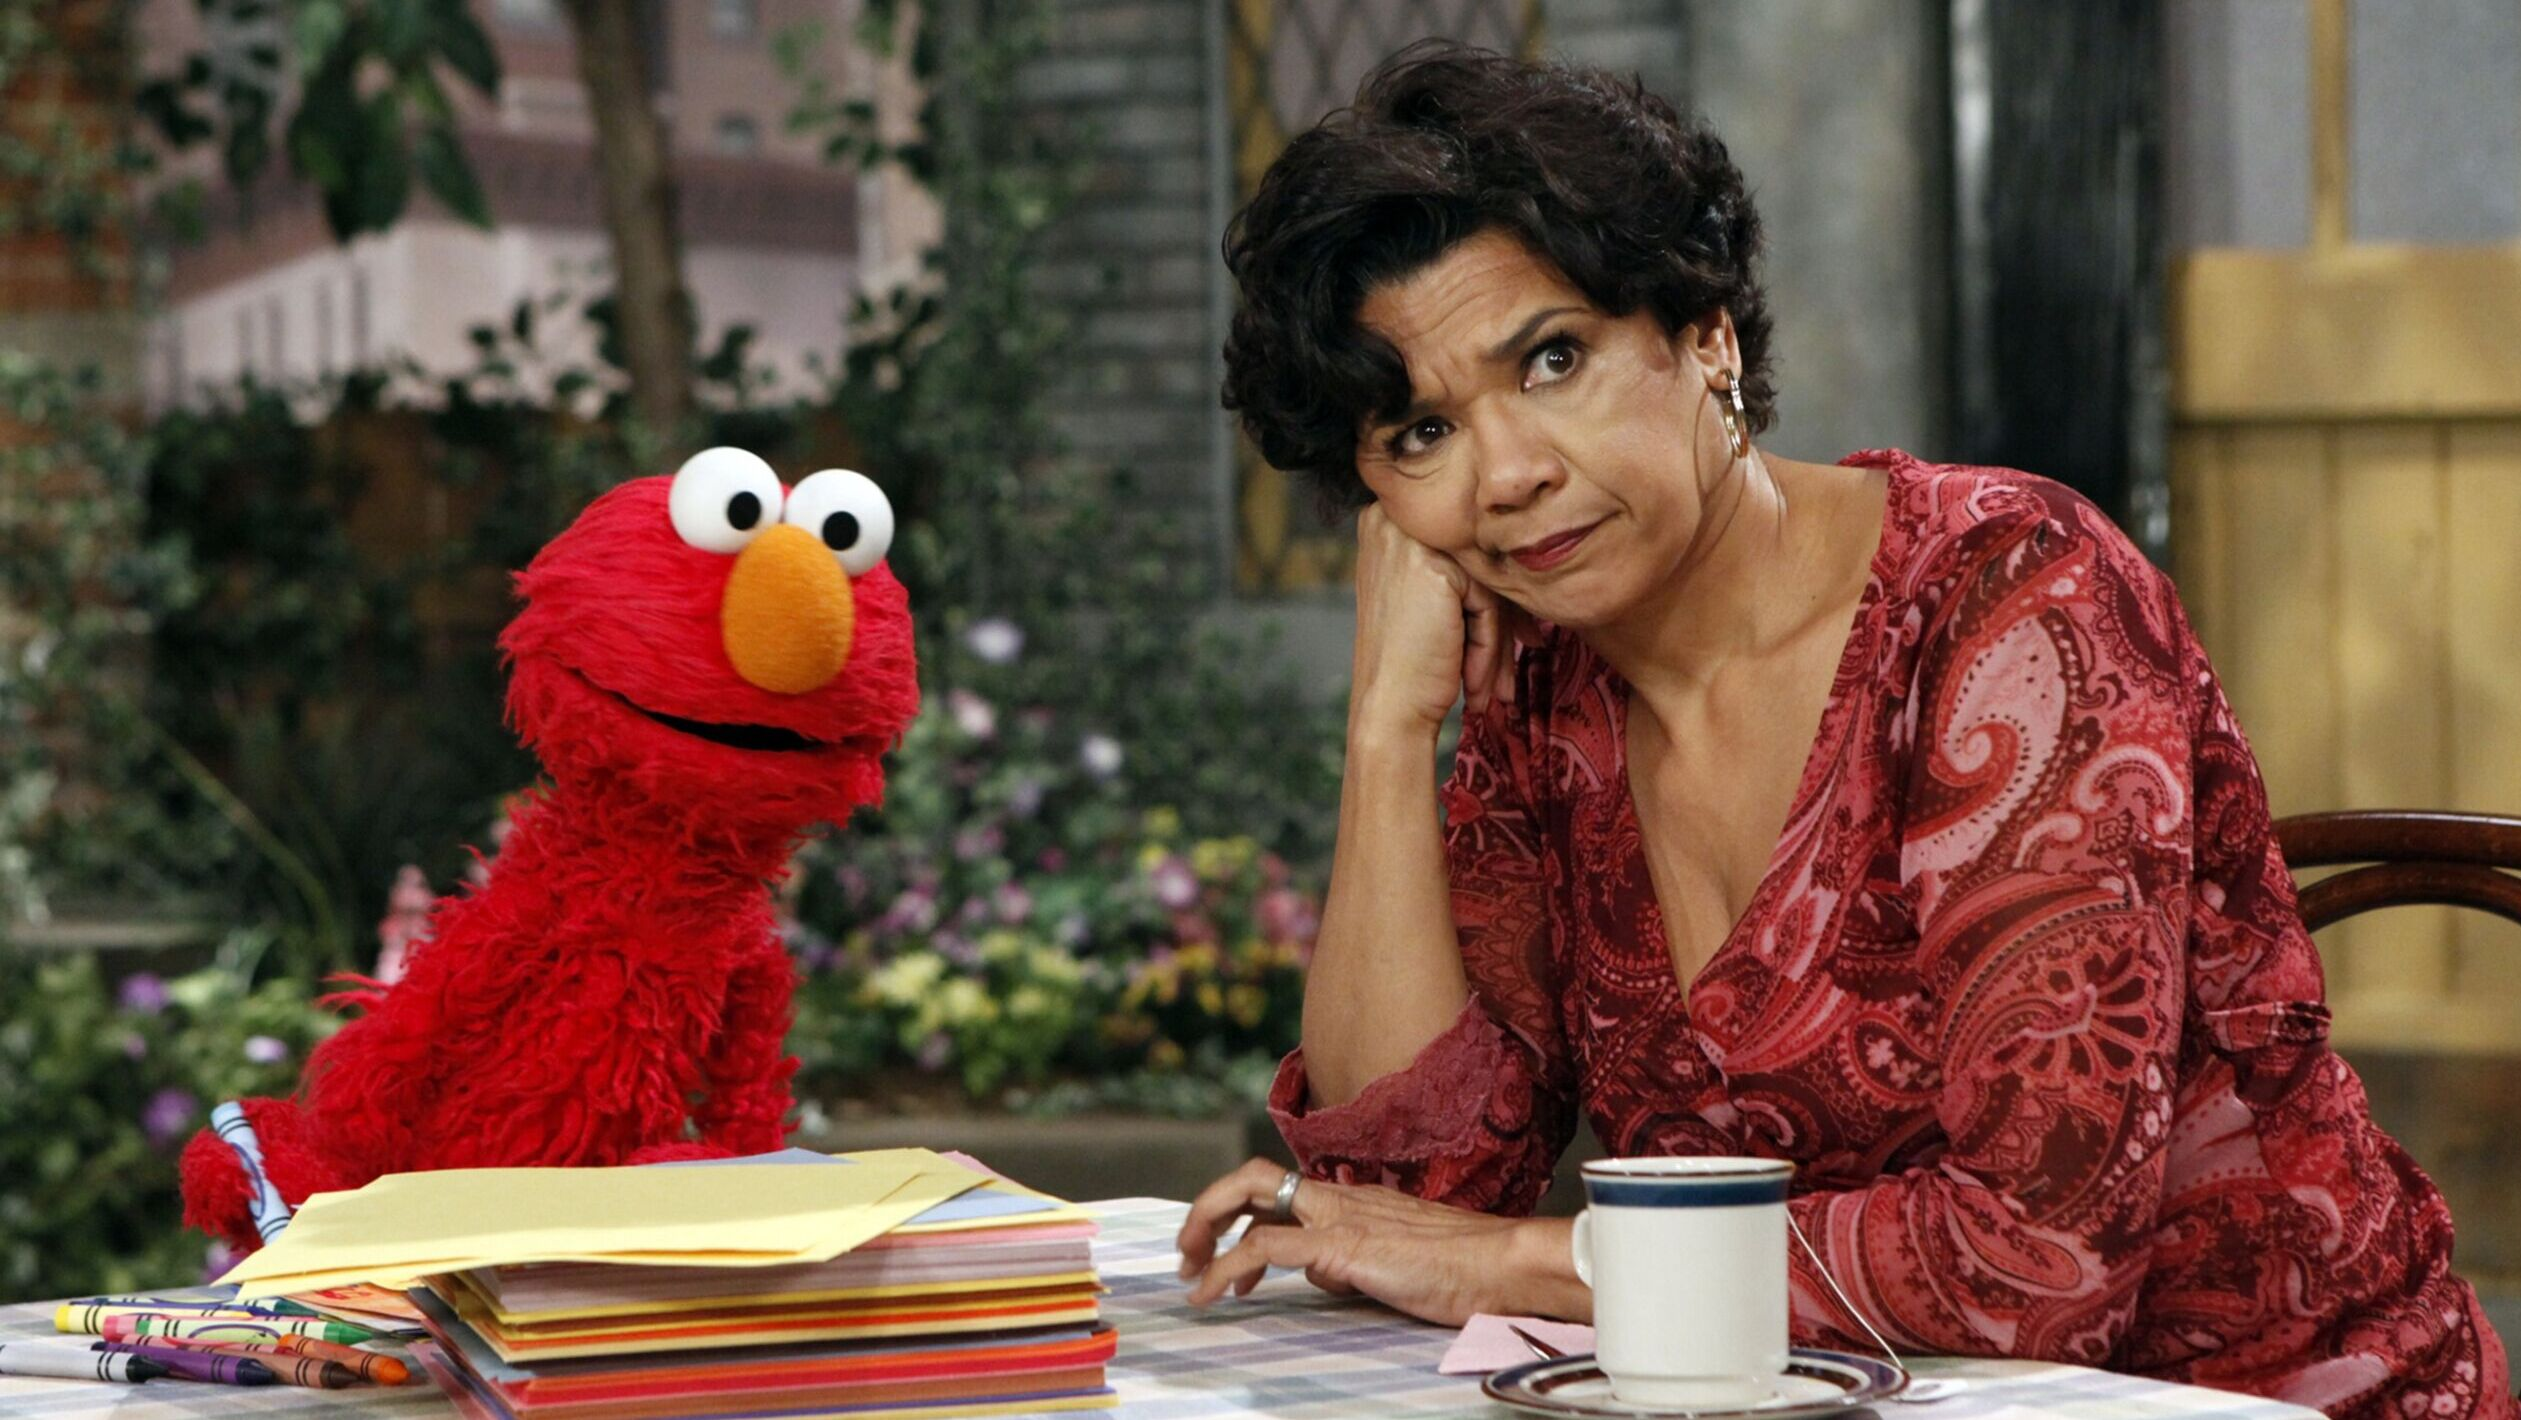 A red puppet character with large orange nose and big round eyes at top of his head sits at a table with a woman in red dress who leas the side of her face on her fist. There is a coffee cup in front of her and books in front of the puppet. The woman looks like she doesn't like something